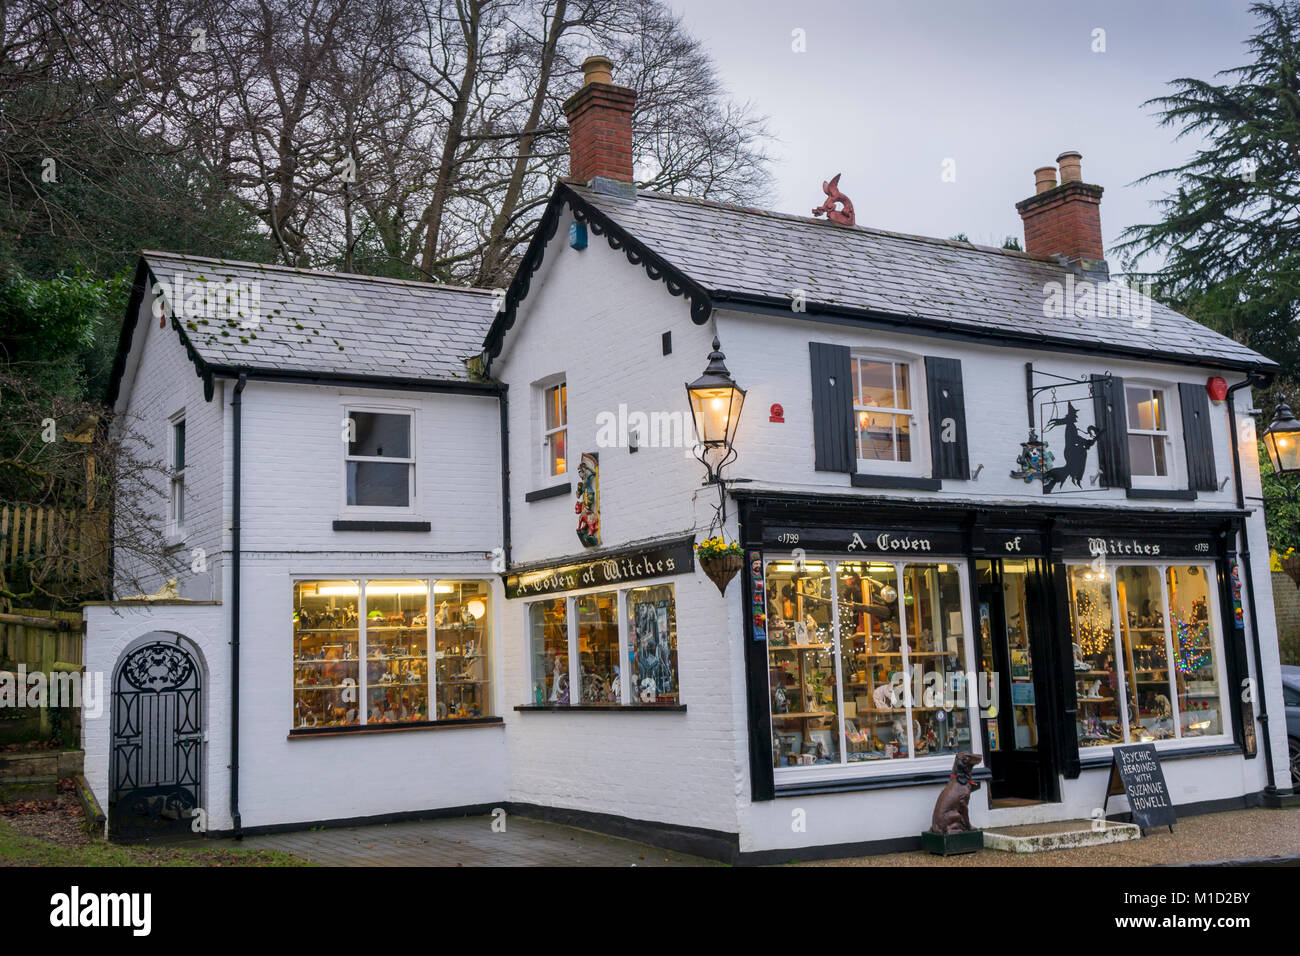 Coven of Witches' new age shop in Burley on a rainy day in the New